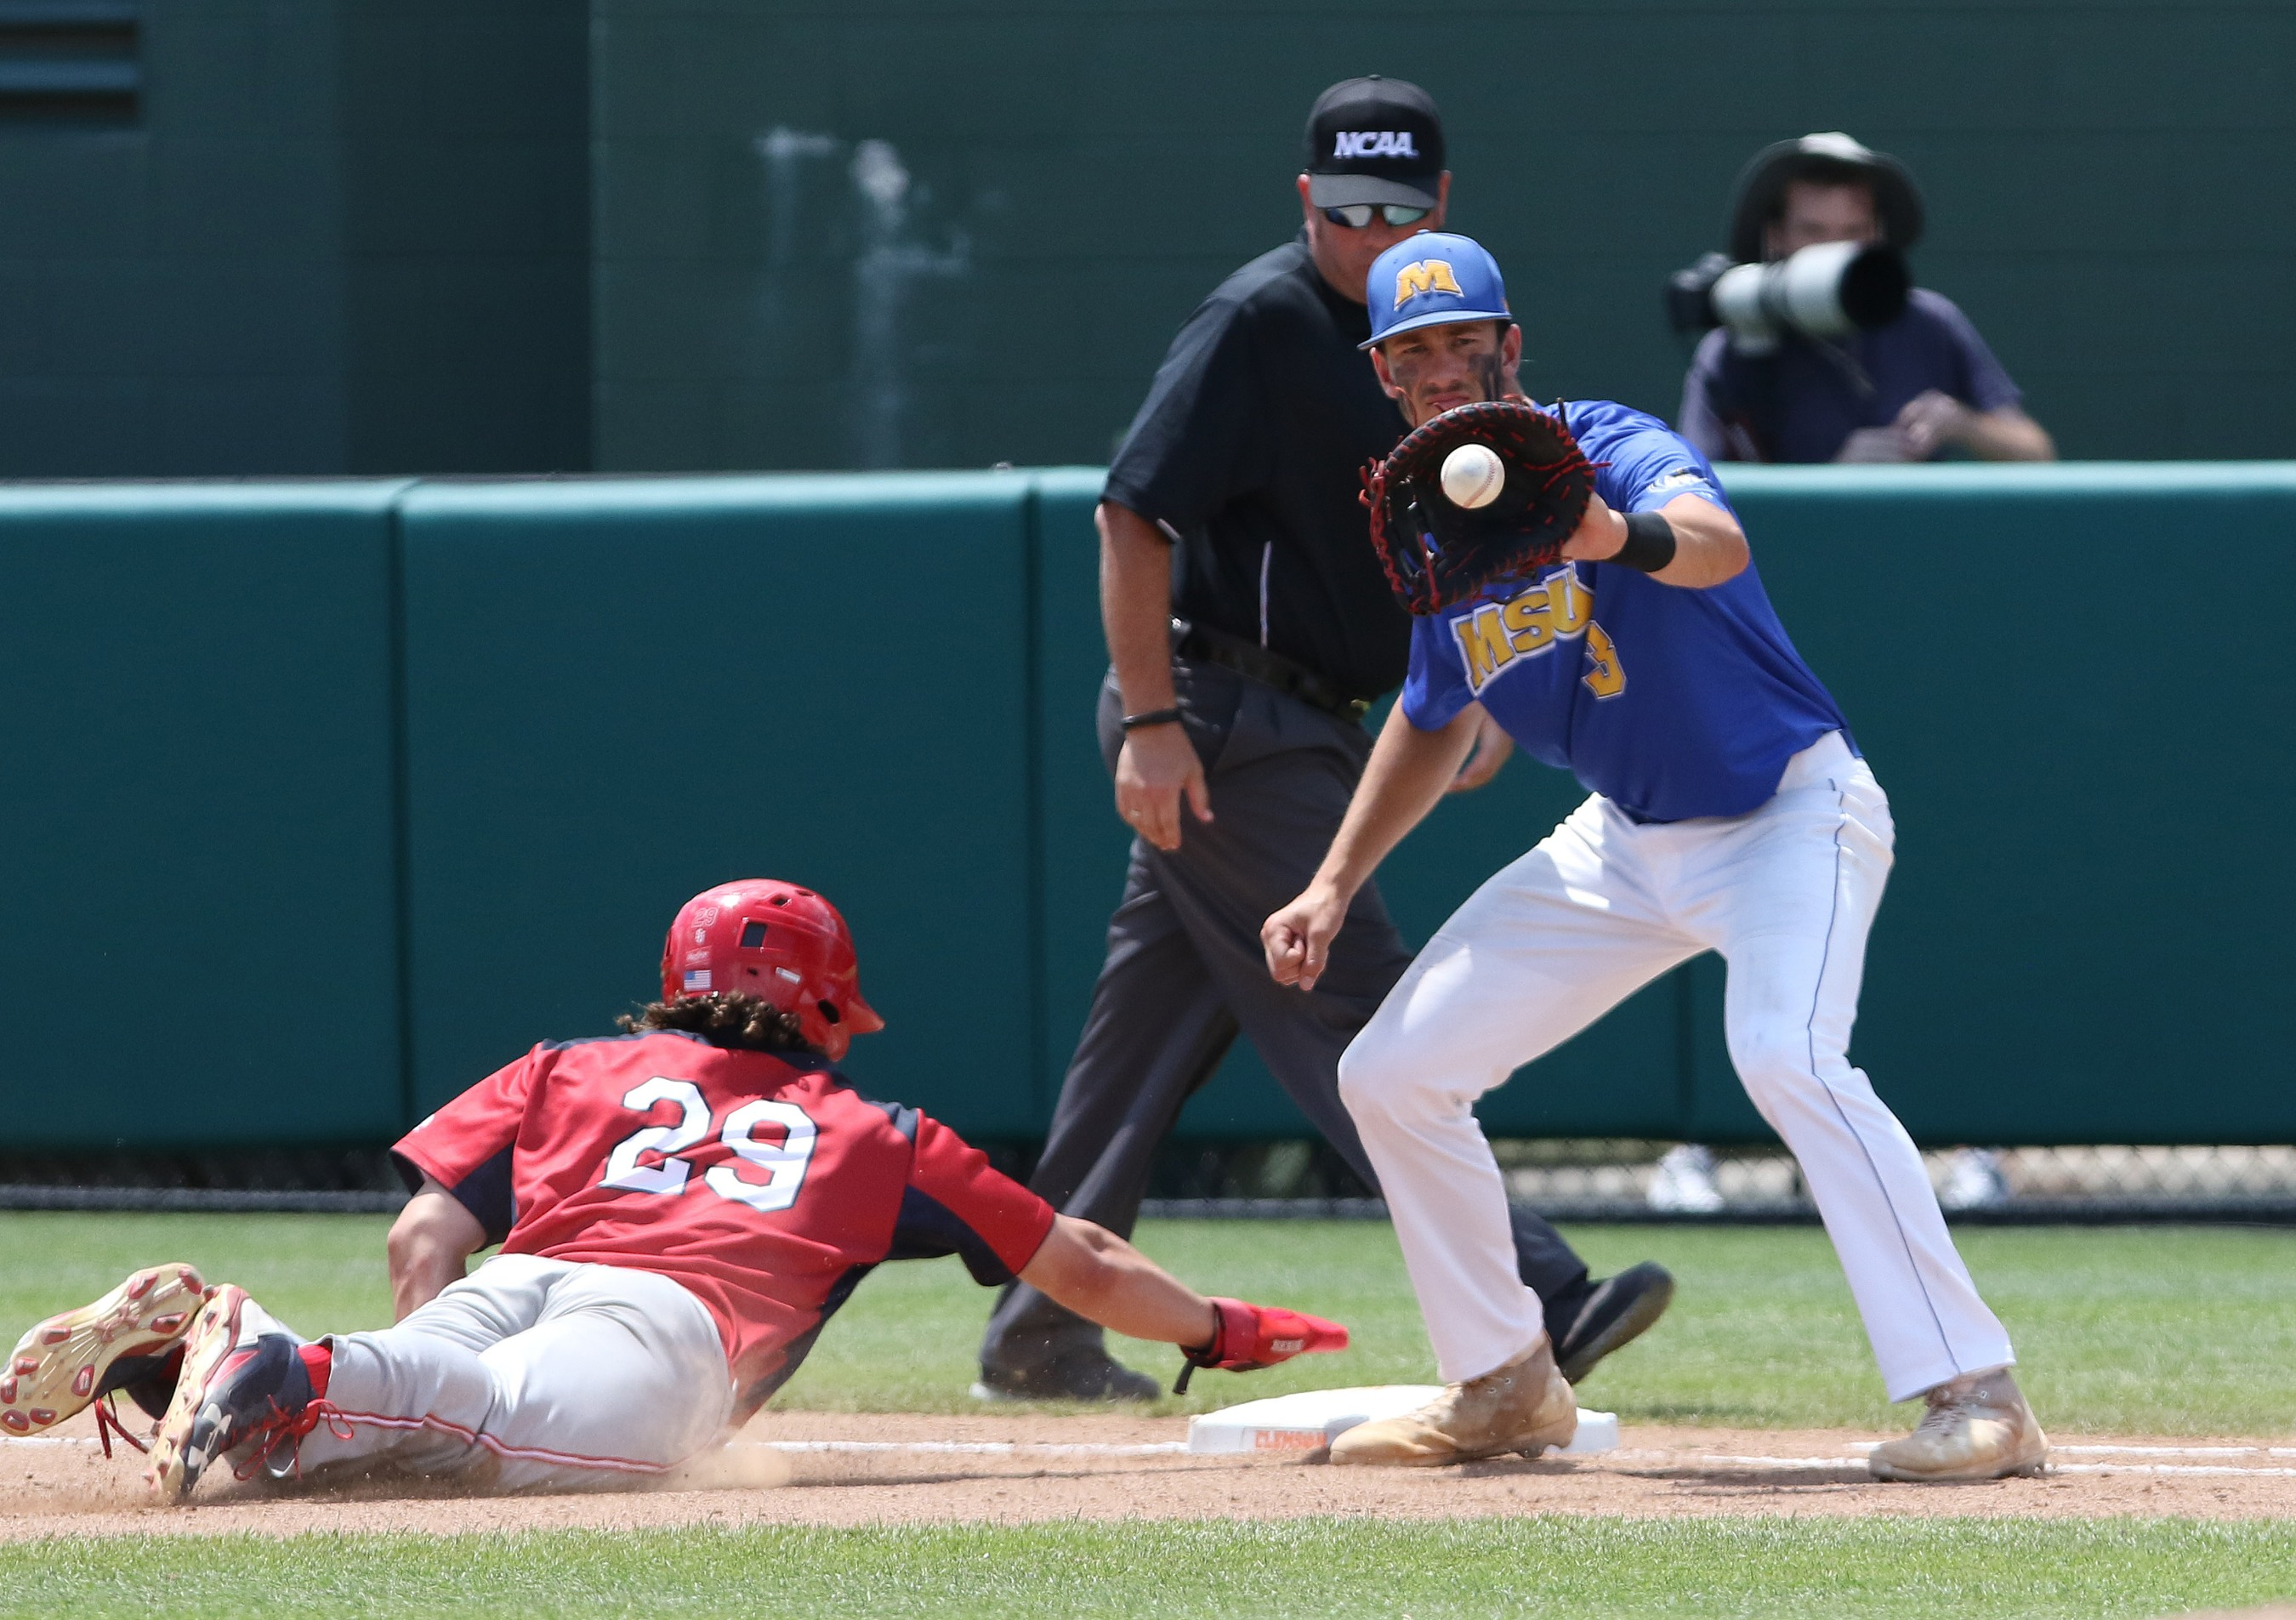 2019 Ohio Valley Conference College Baseball Preview